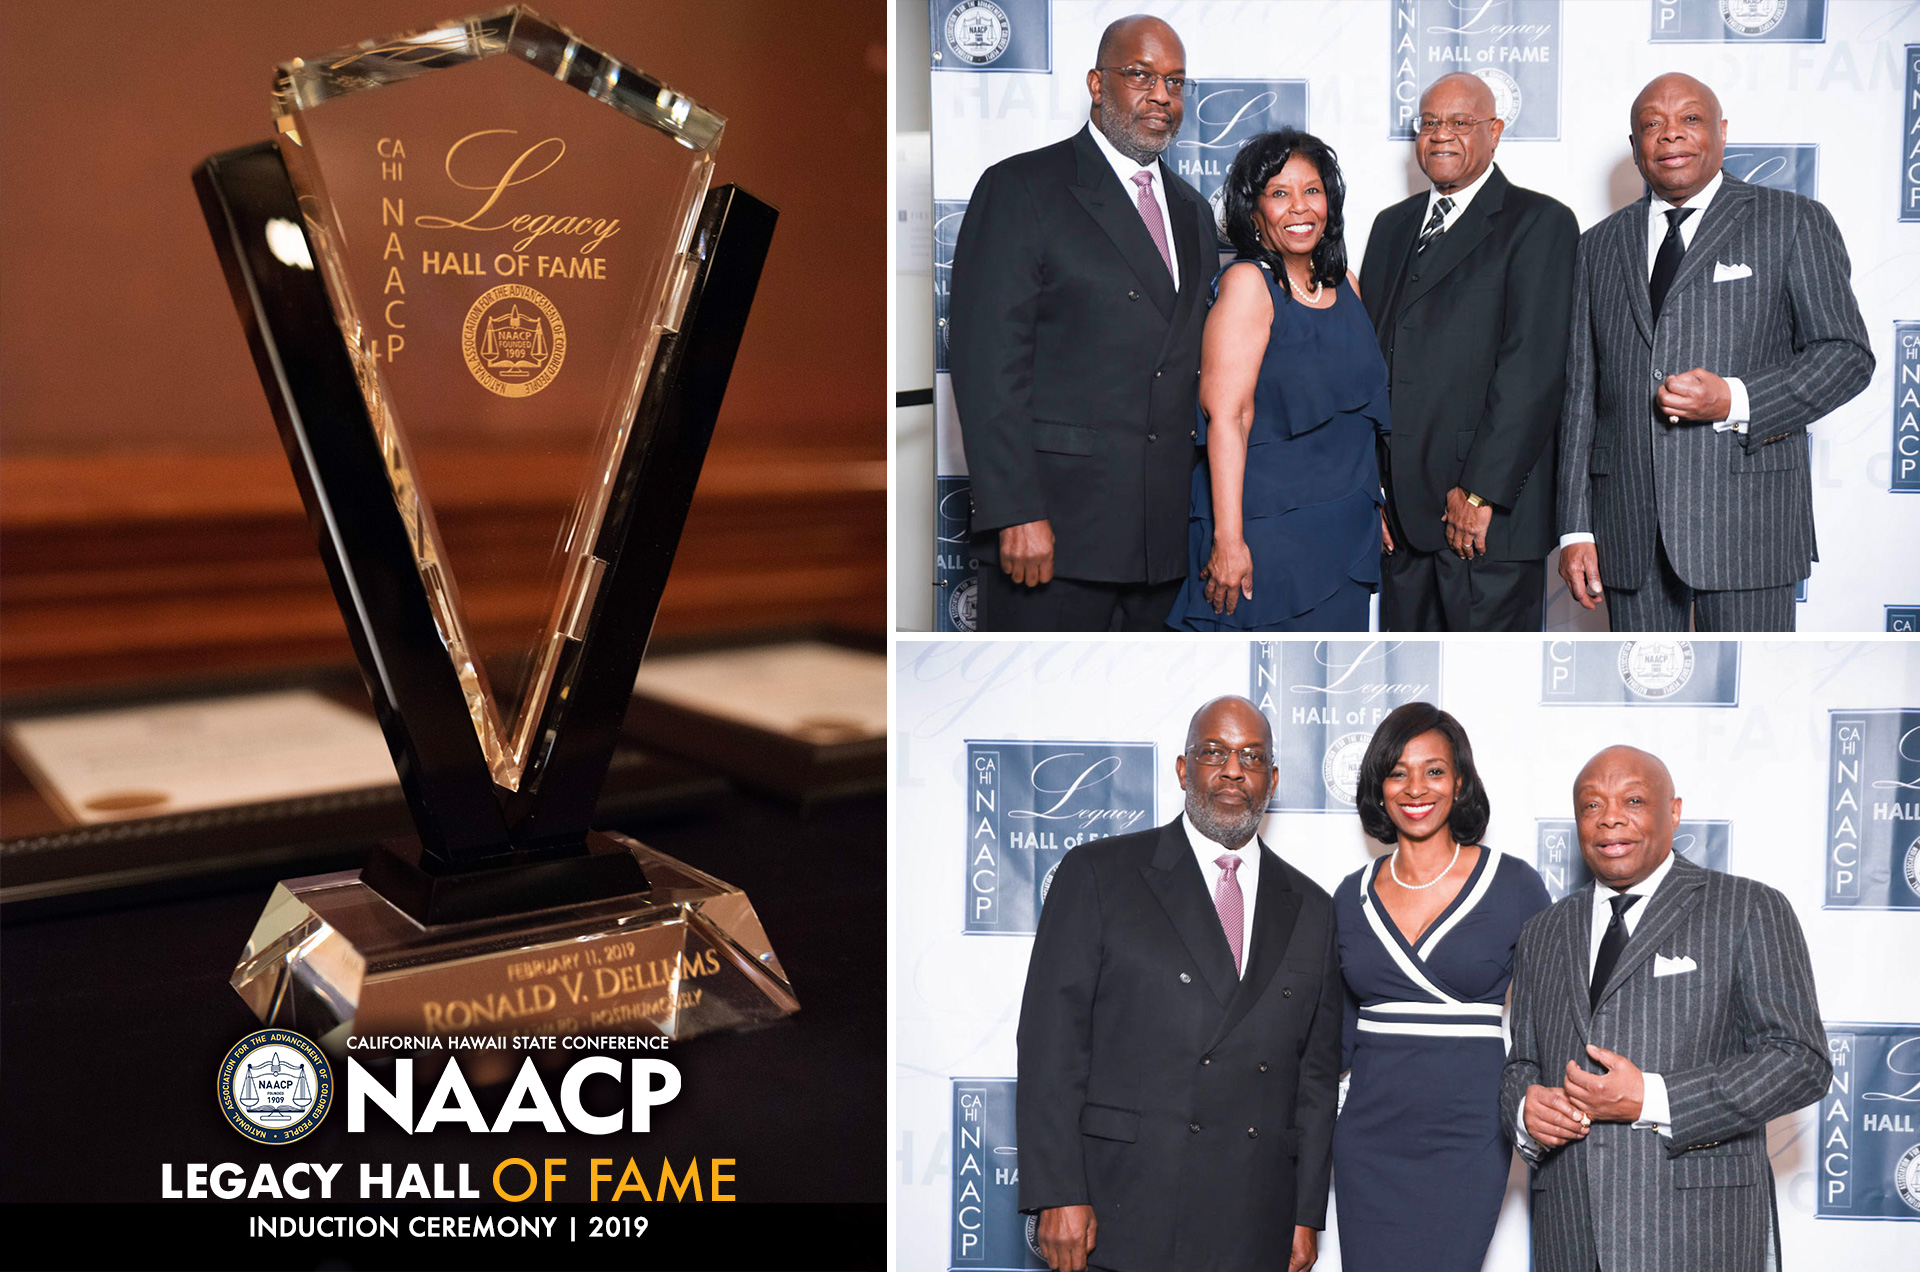 CA/HI State Conference NAACP Legacy Hall of Fame event 2019